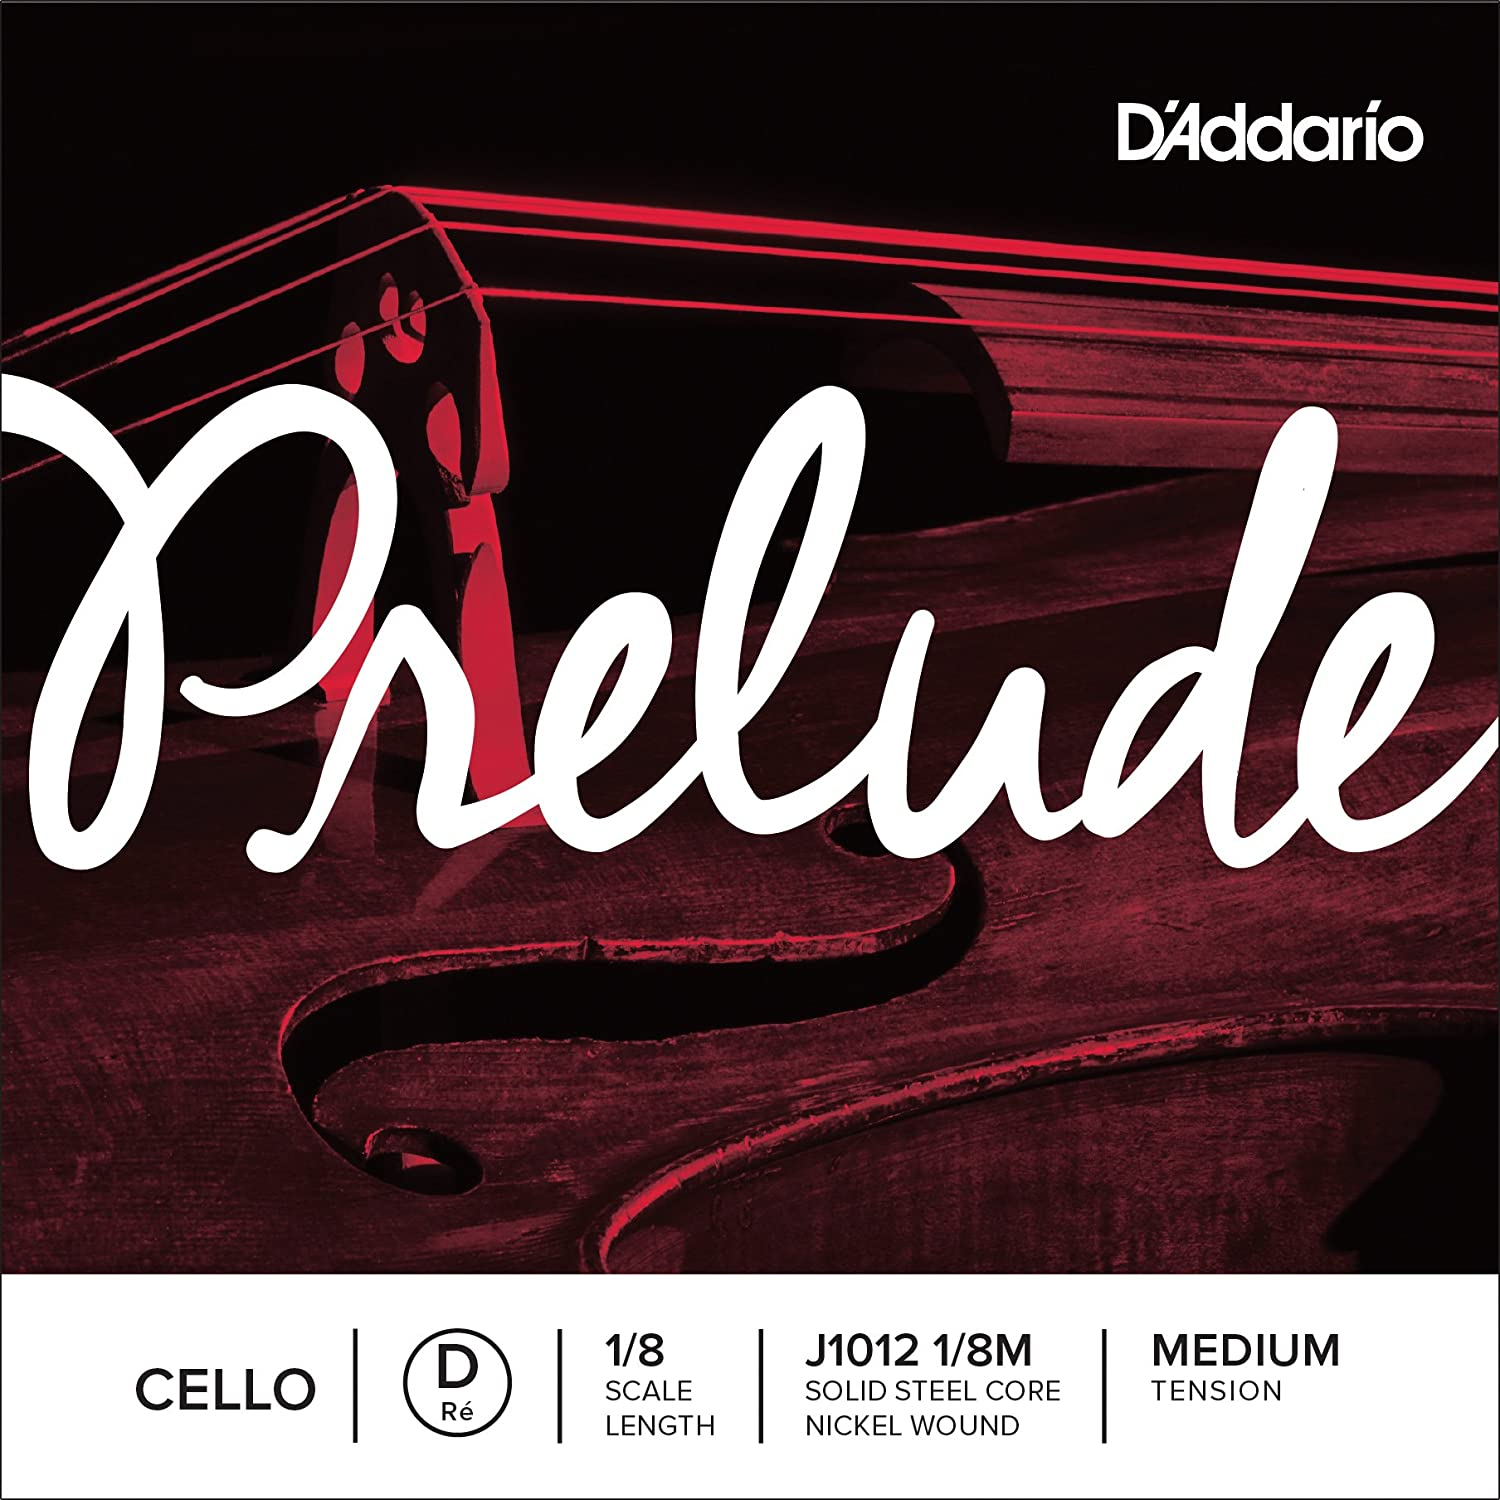 D'Addario Prelude Cello Single D String, 4/4 Scale, Medium Tension D' Addario J1012 4/4M